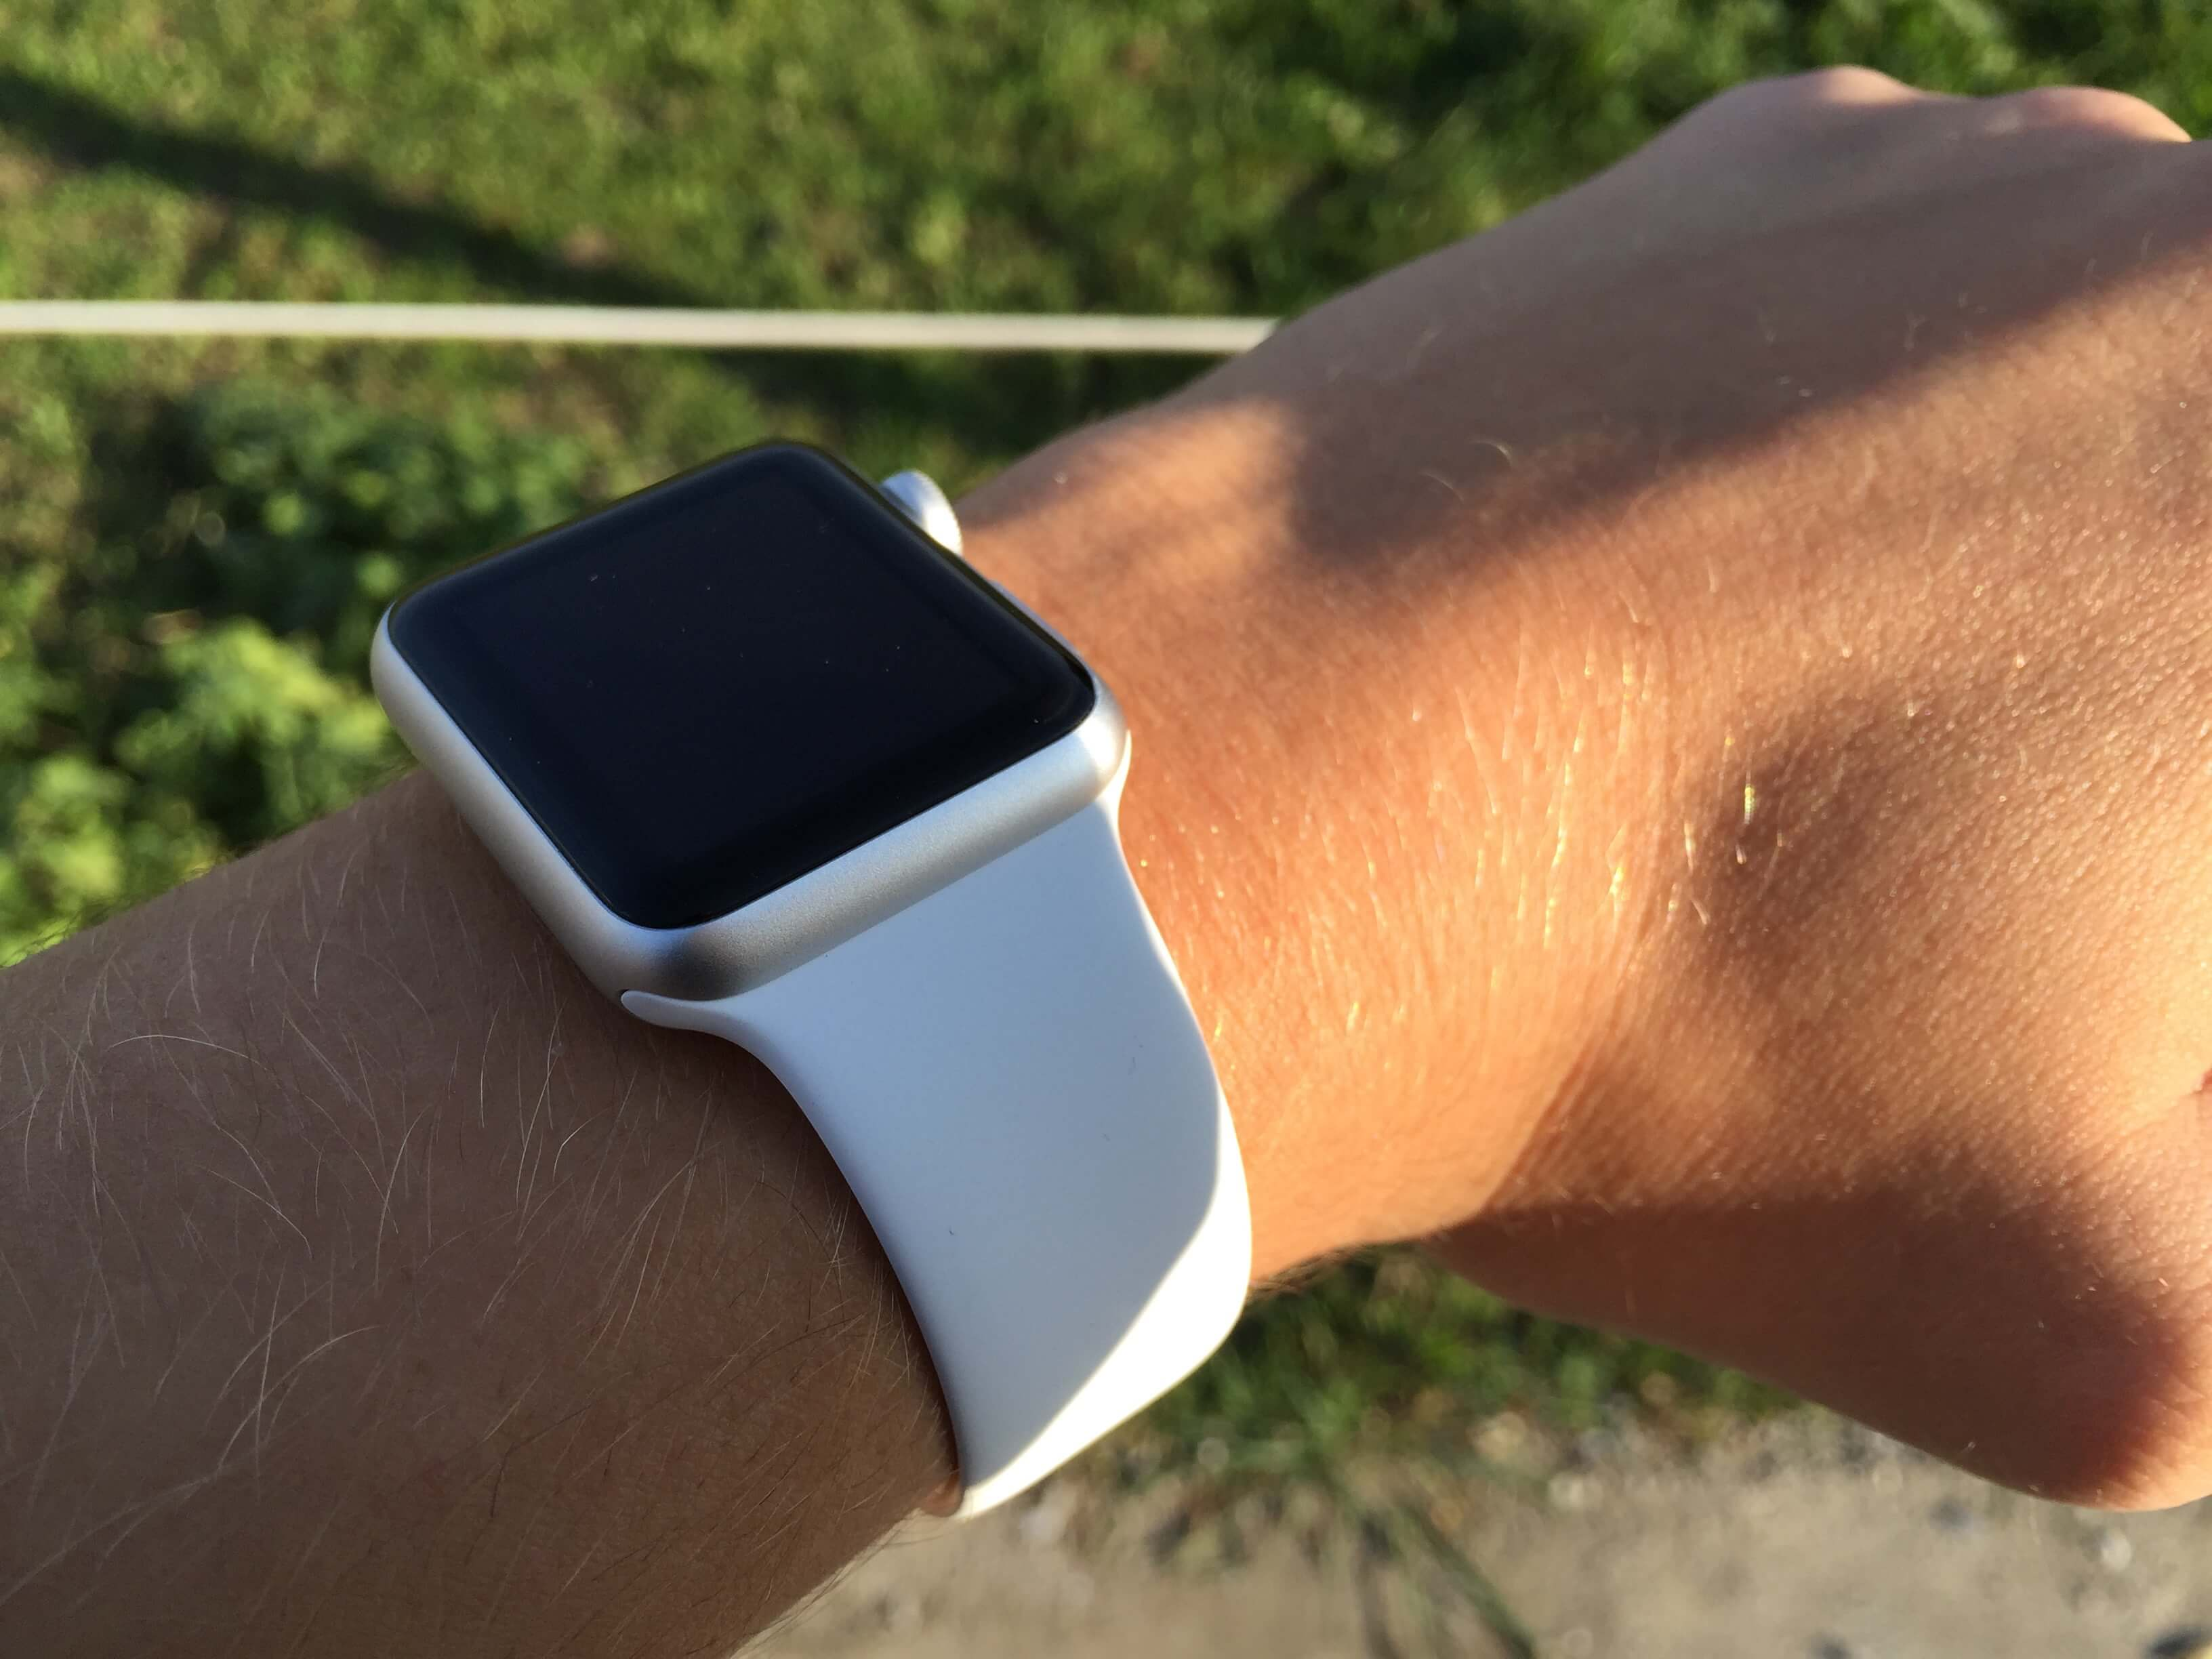 Mein Smartwatch Experiment - Der Start mit der Apple Watch 1